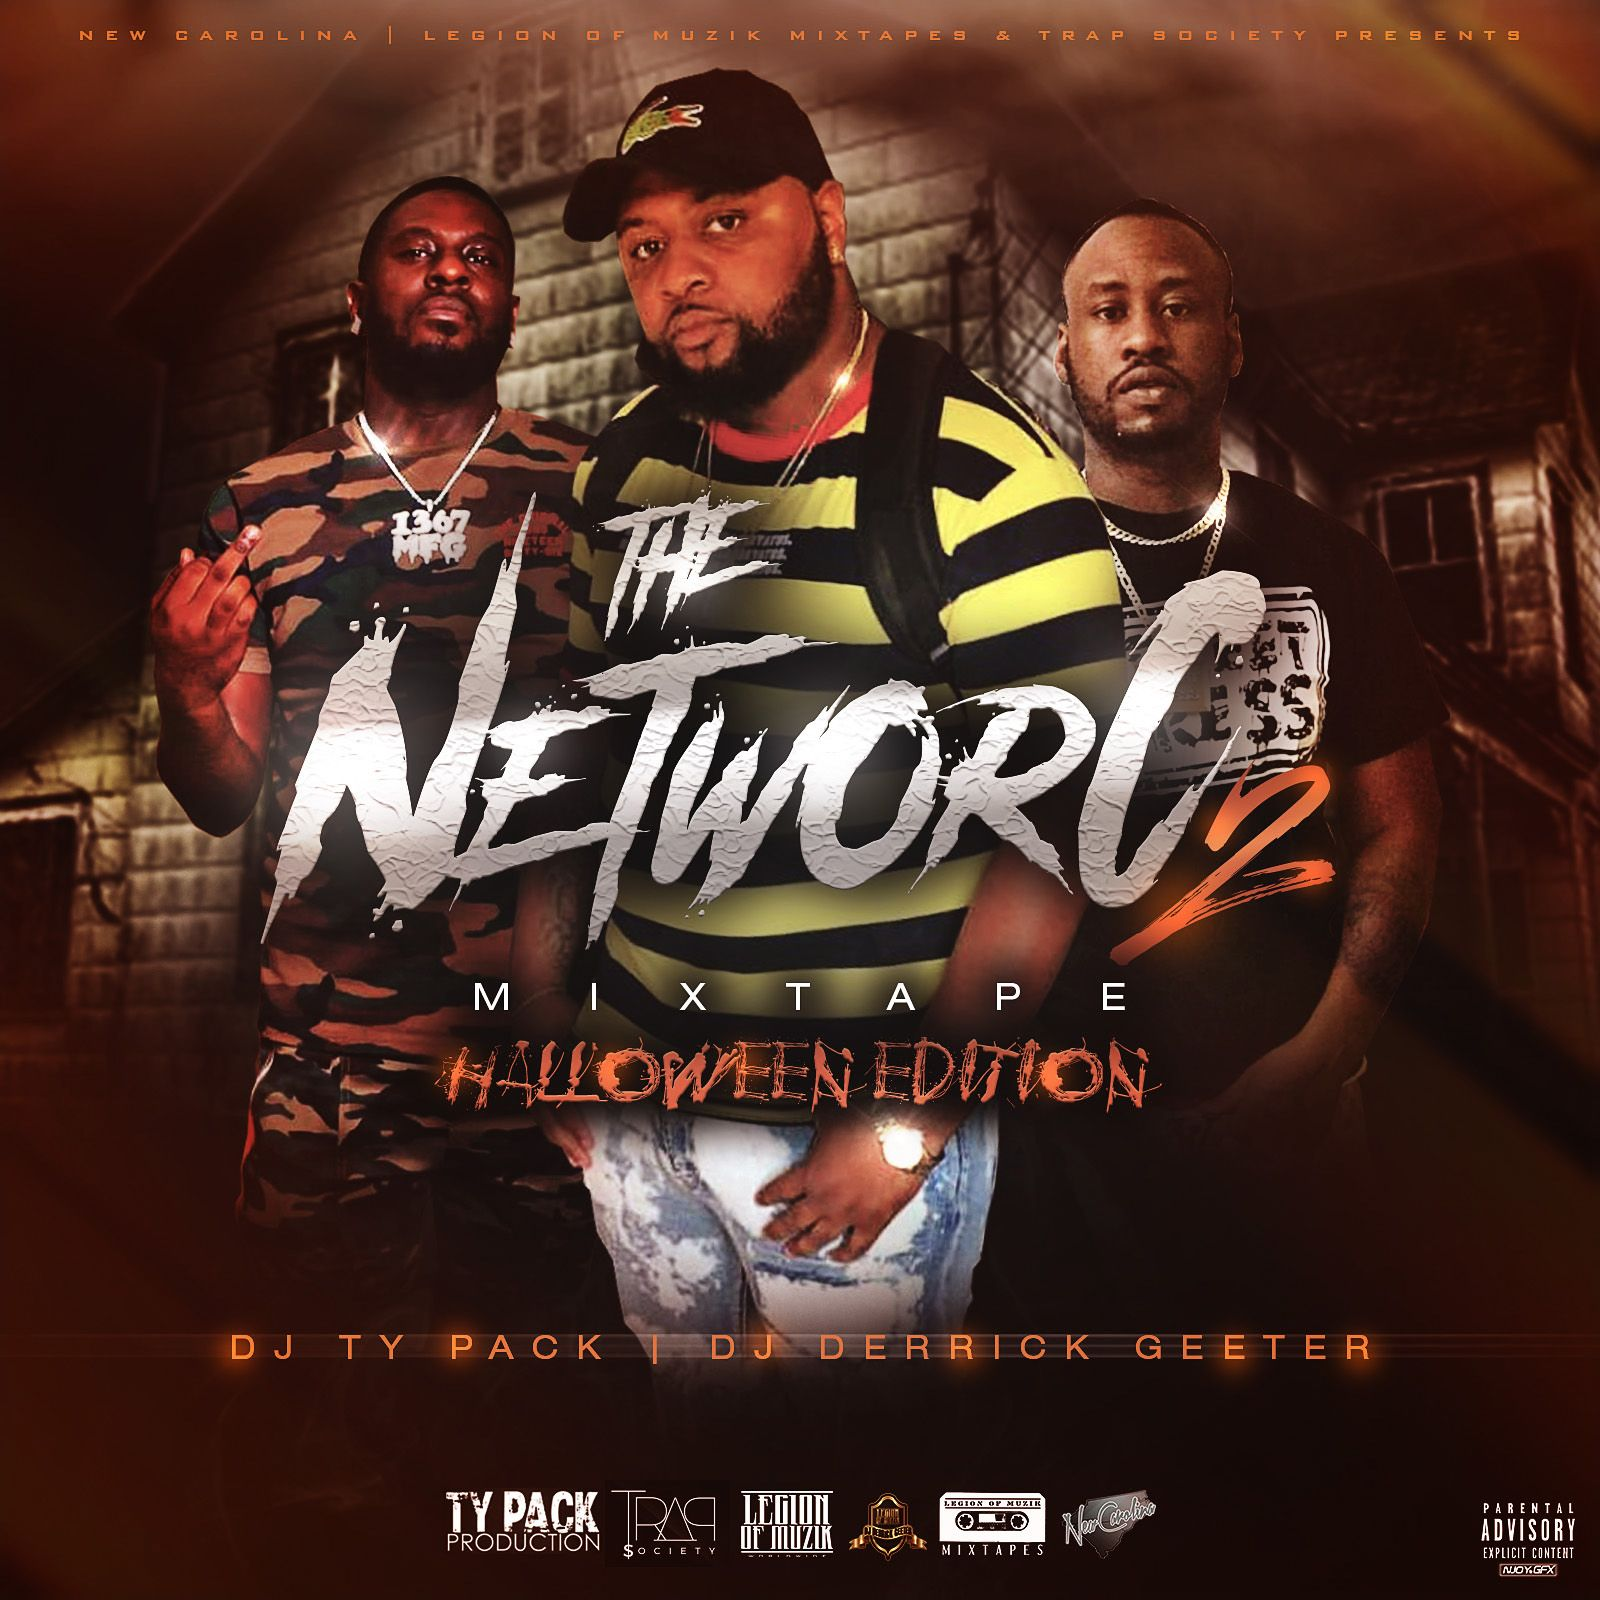 20 Wallway Pack Ft Fat Trel - Cold Mission by Various NC